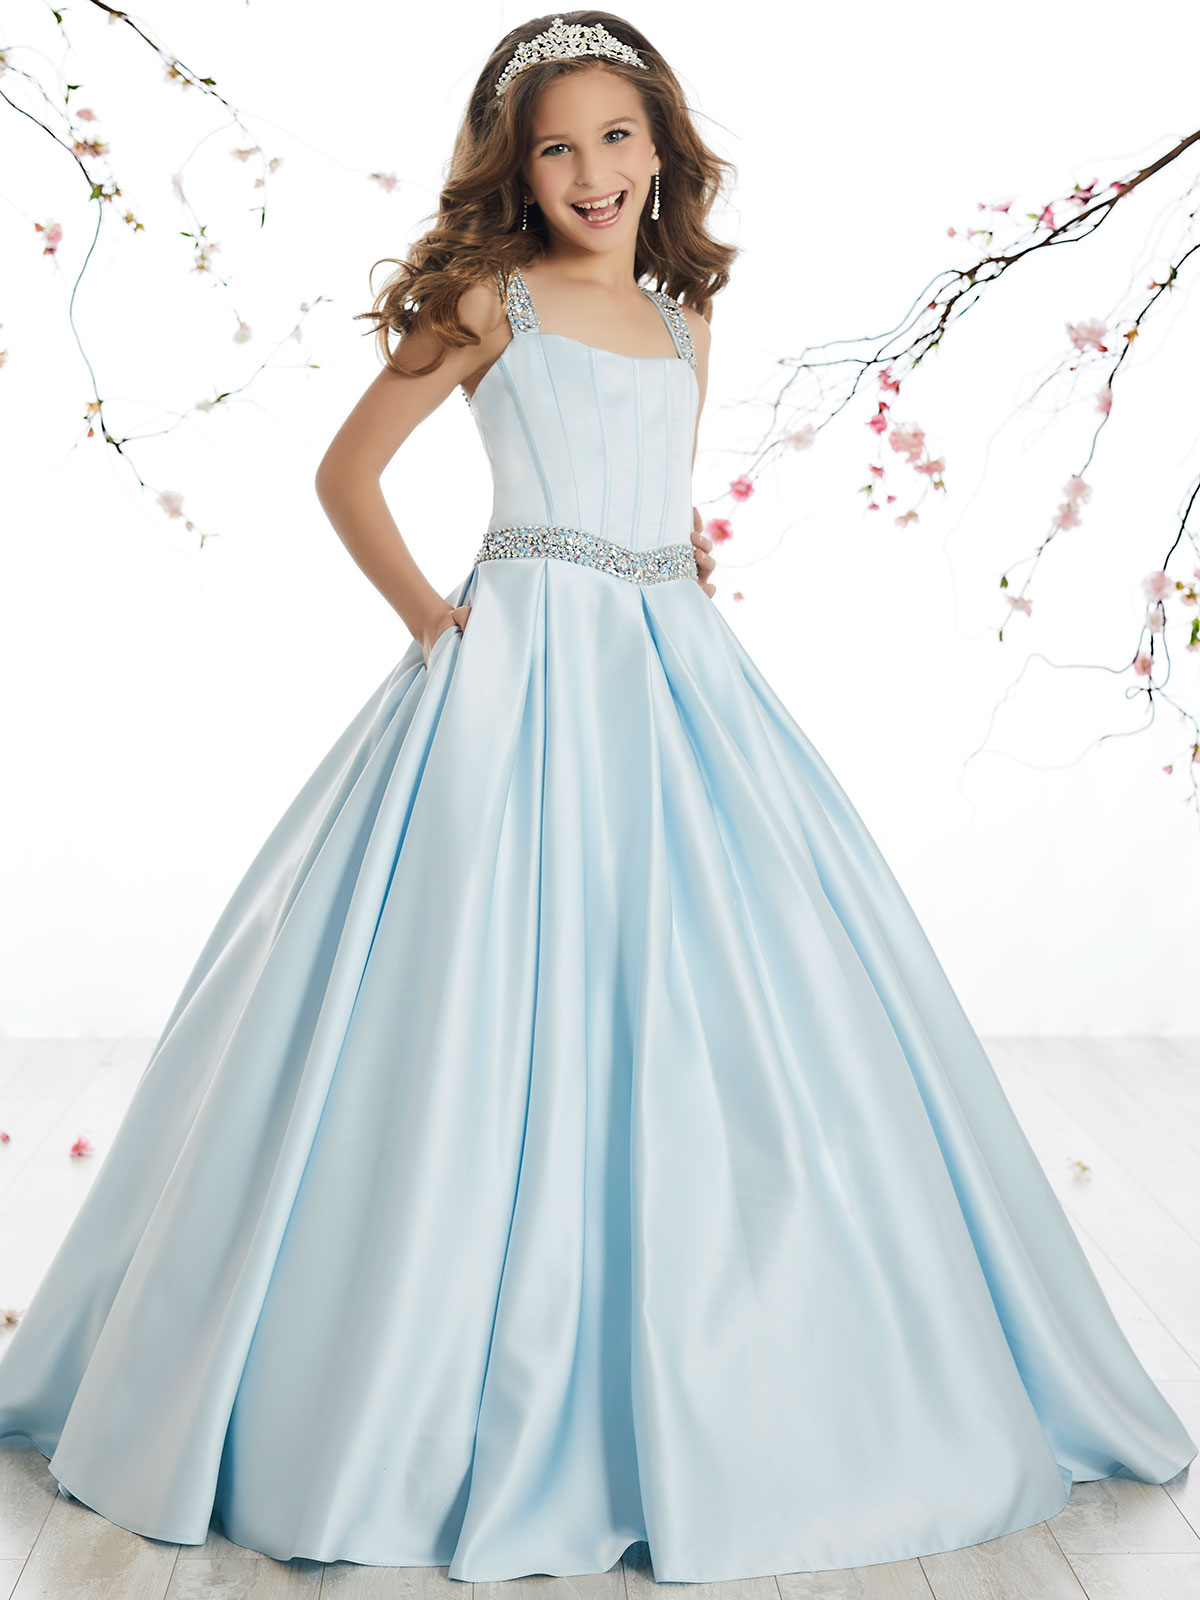 Tiffany Princess Winning Pageant Dresses for Girls | PageantDesigns.com